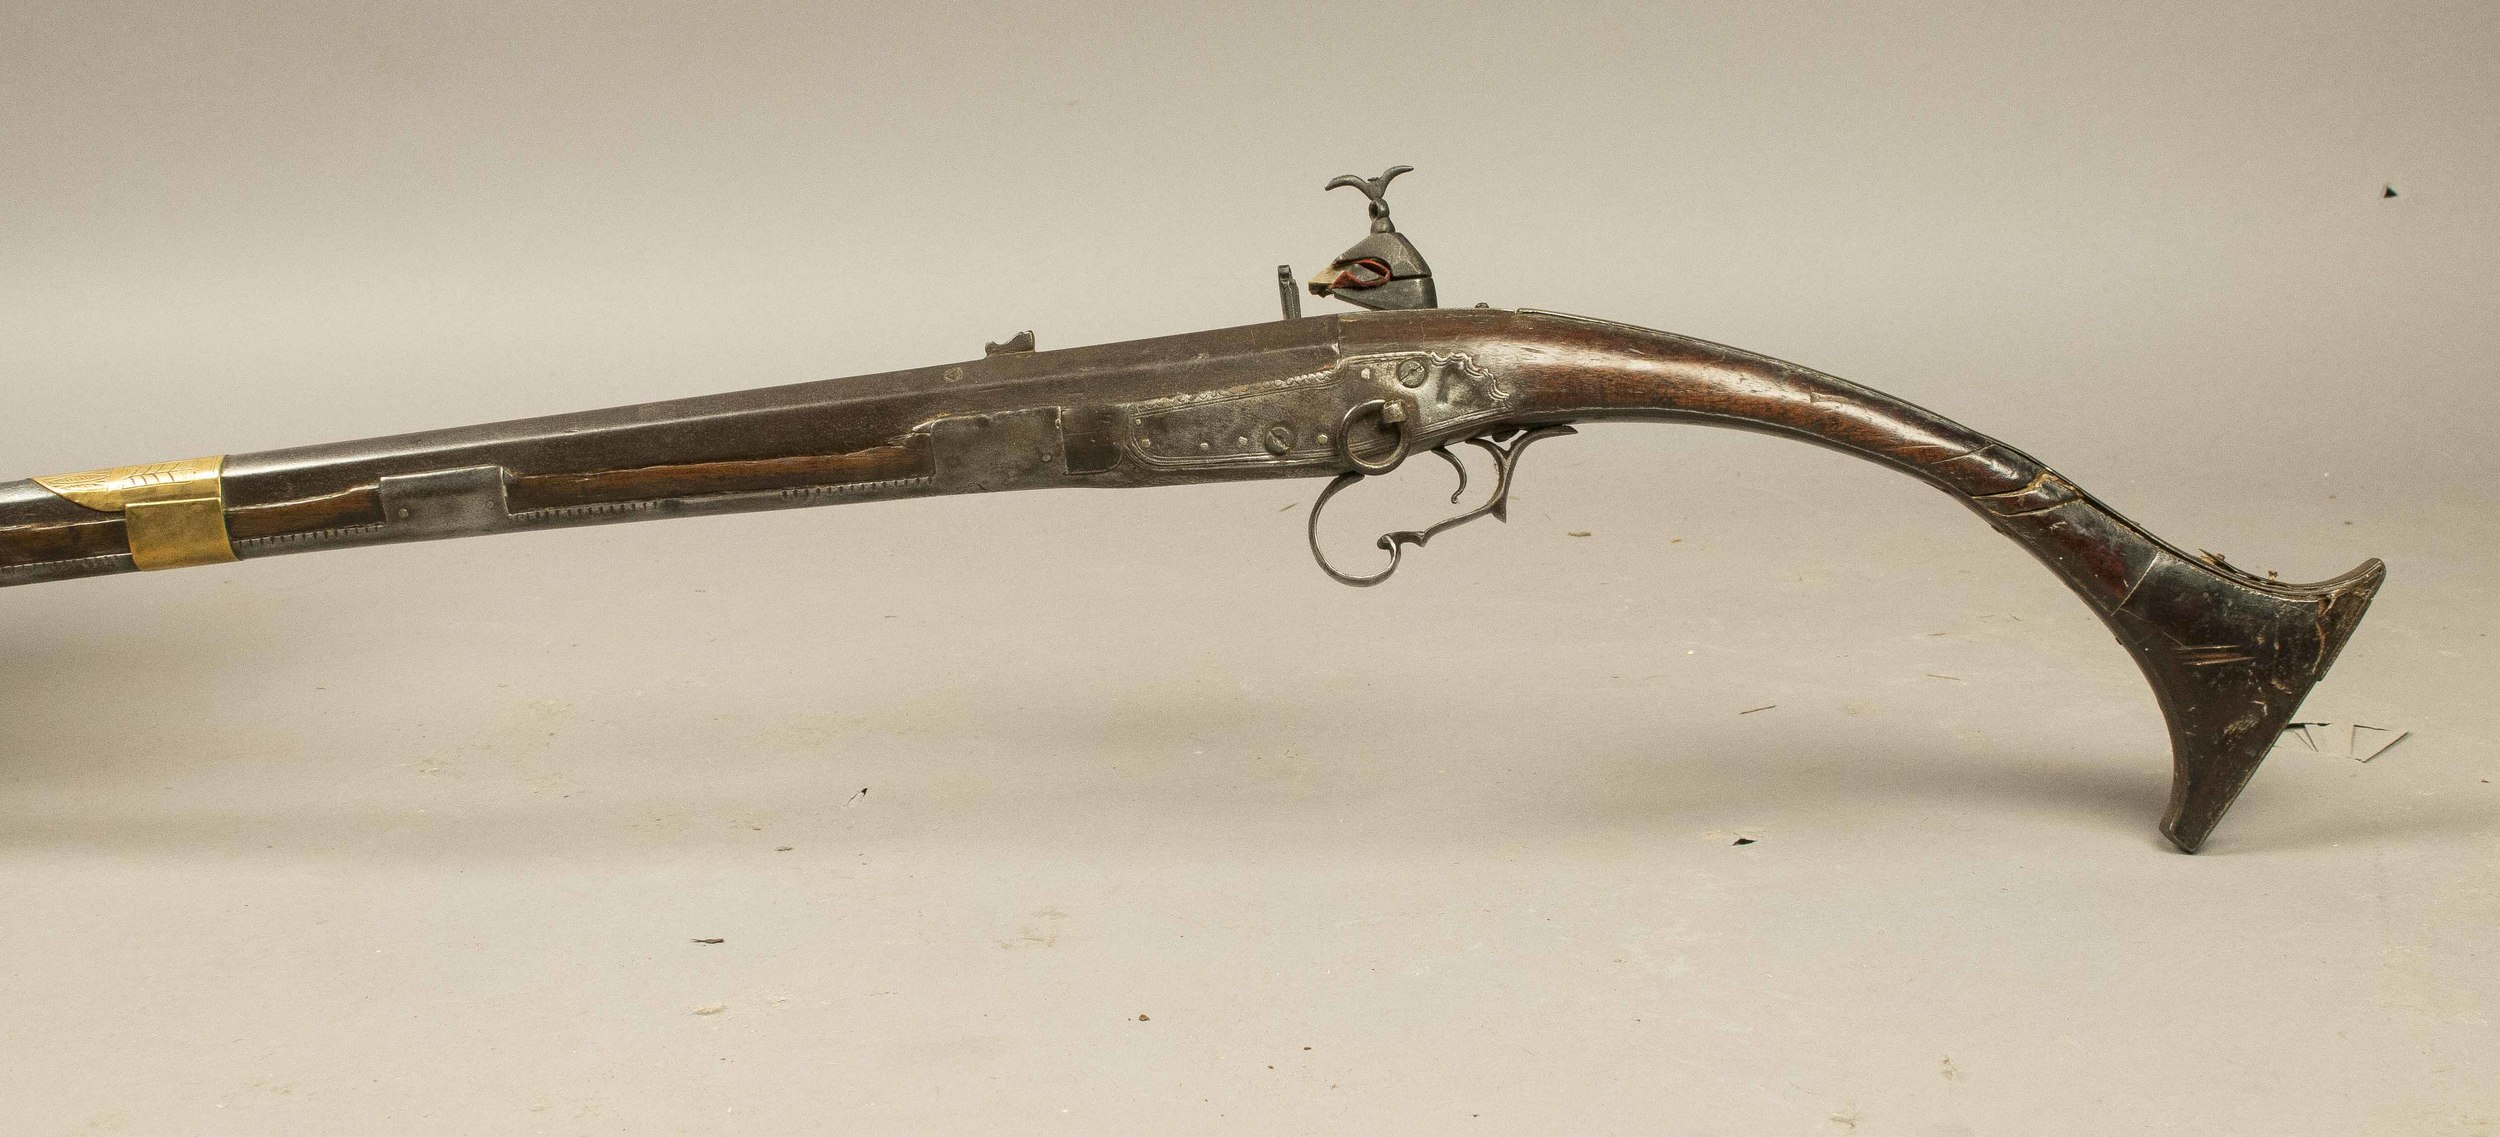 Jezail Exceptional Arab Musket With Italian Barrel And